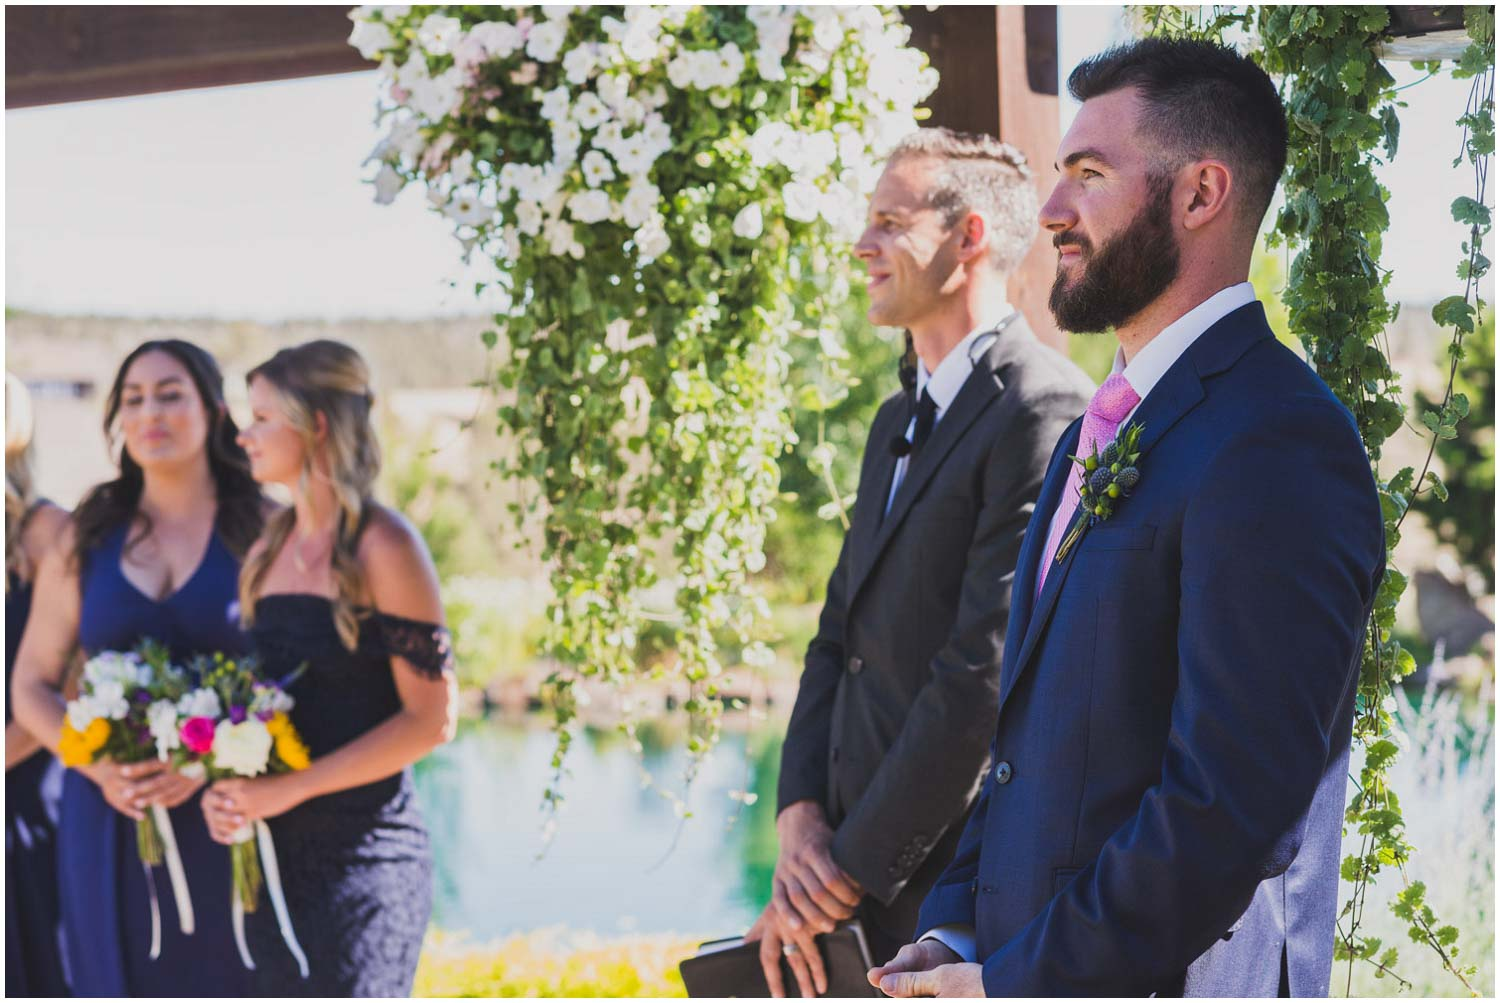 groom with wedding party watches his bride walk down the aisle at faith hope and charity vineyard